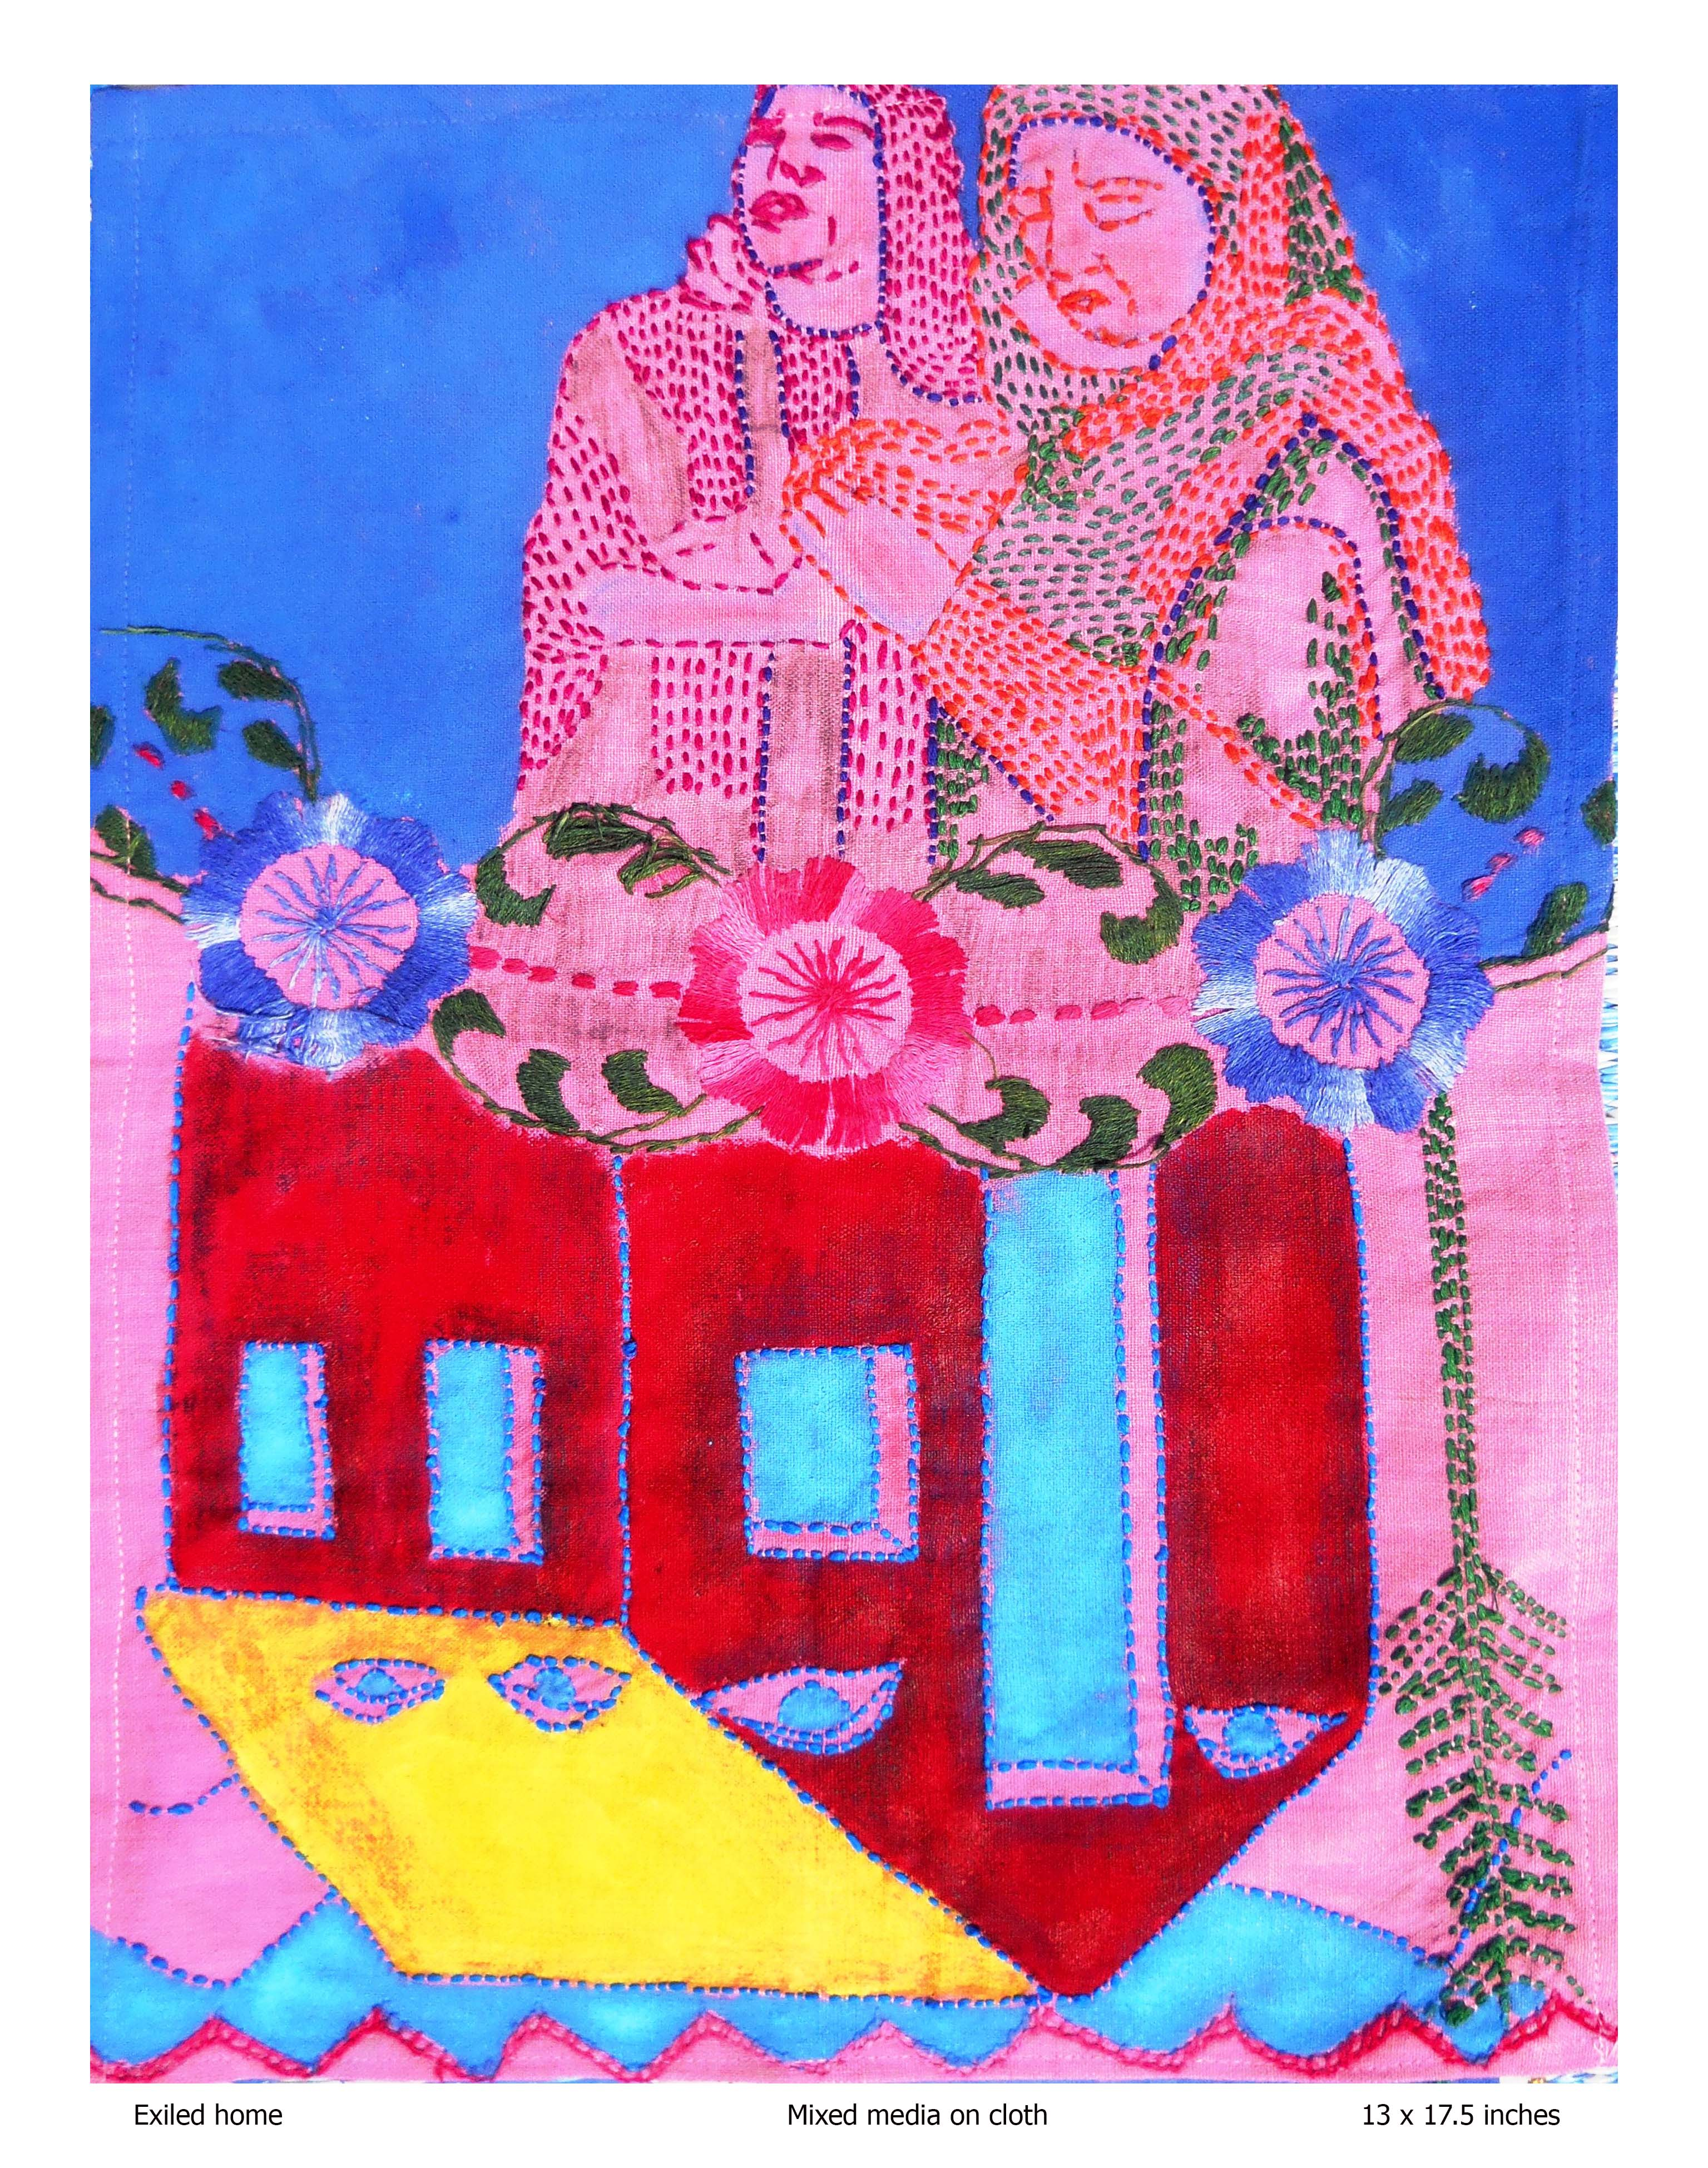 Exiled home, Mixed media on cloth, Rollie Mukherjee